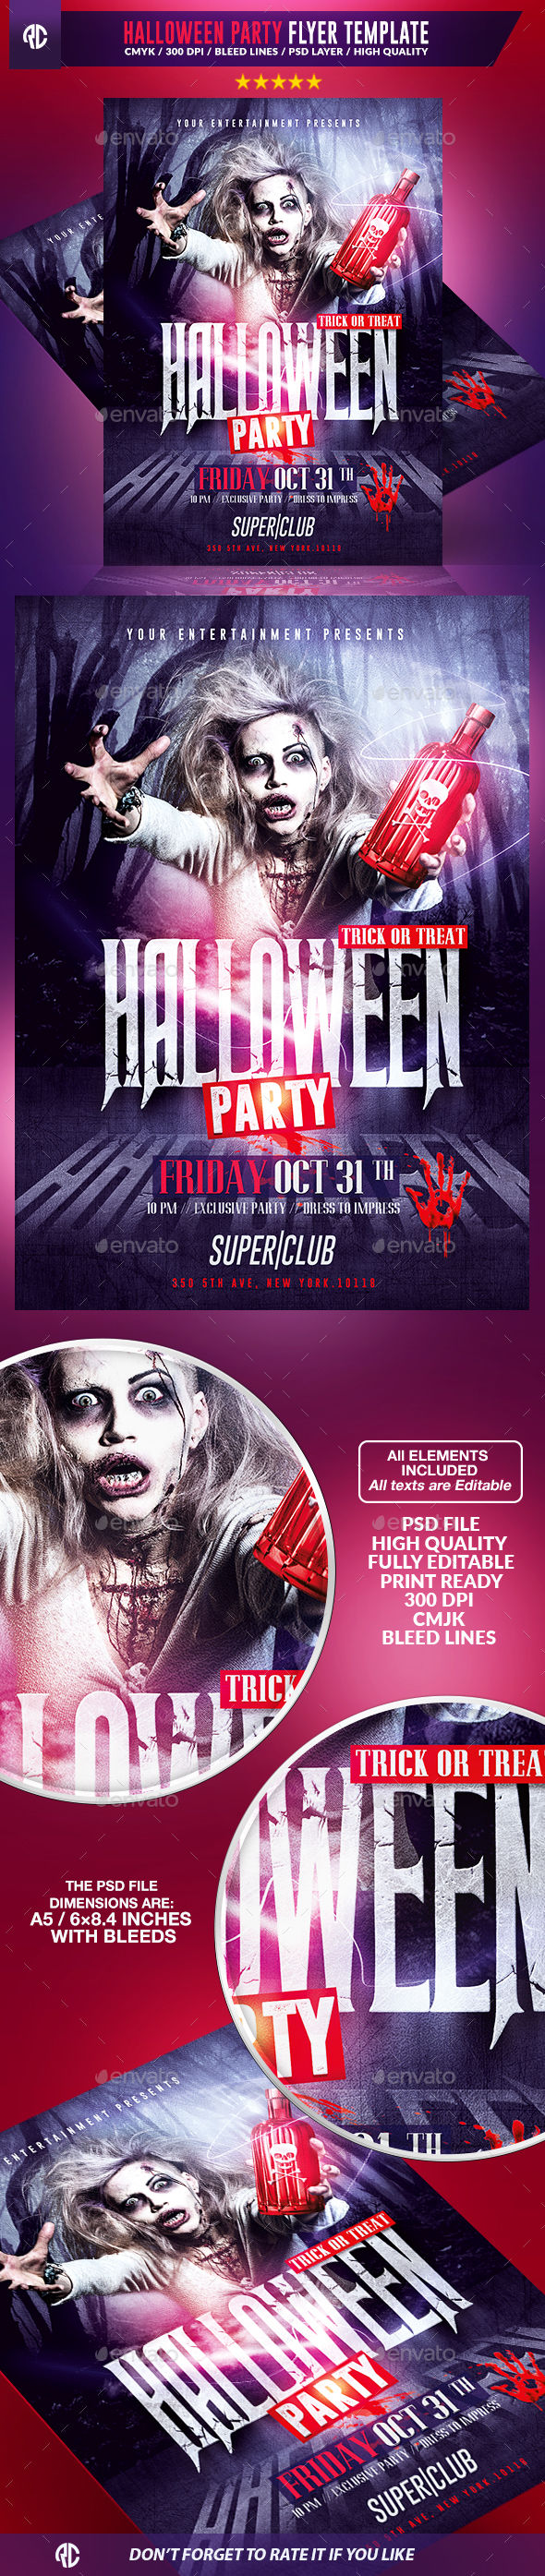 Halloween Party by RomeCreation (Halloween party flyer)